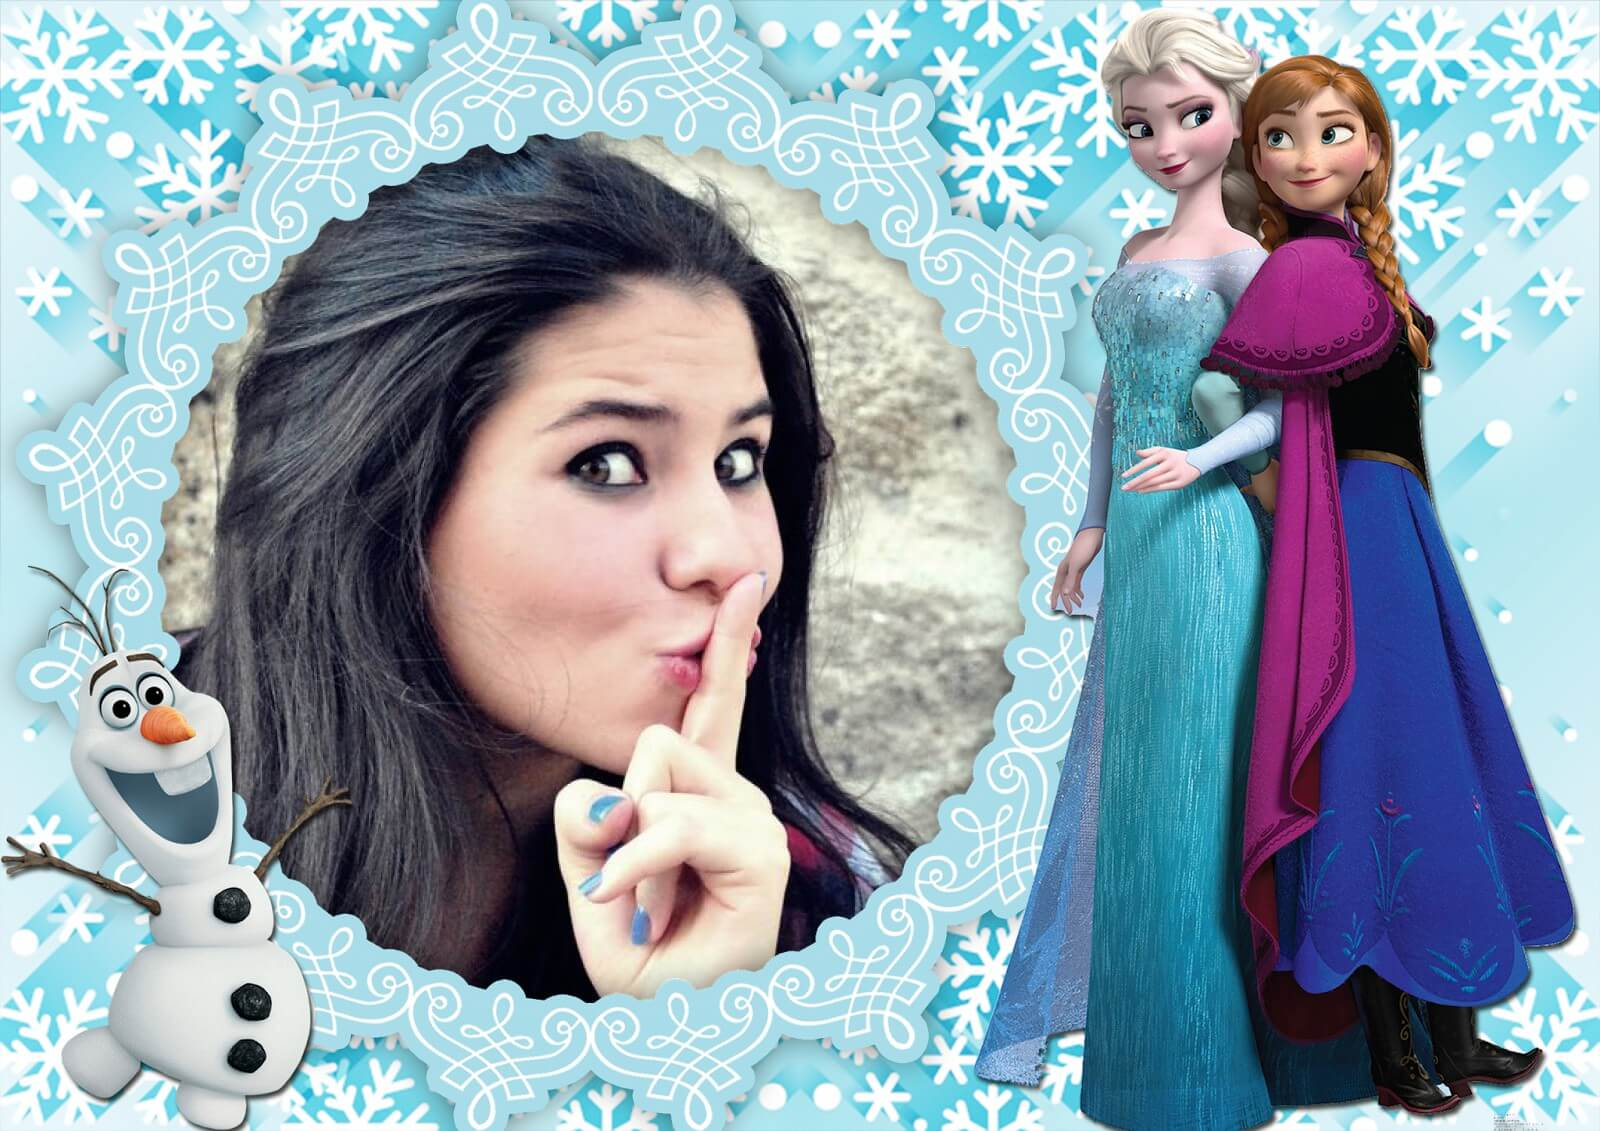 moldura-do-filme-de-animacao-frozen